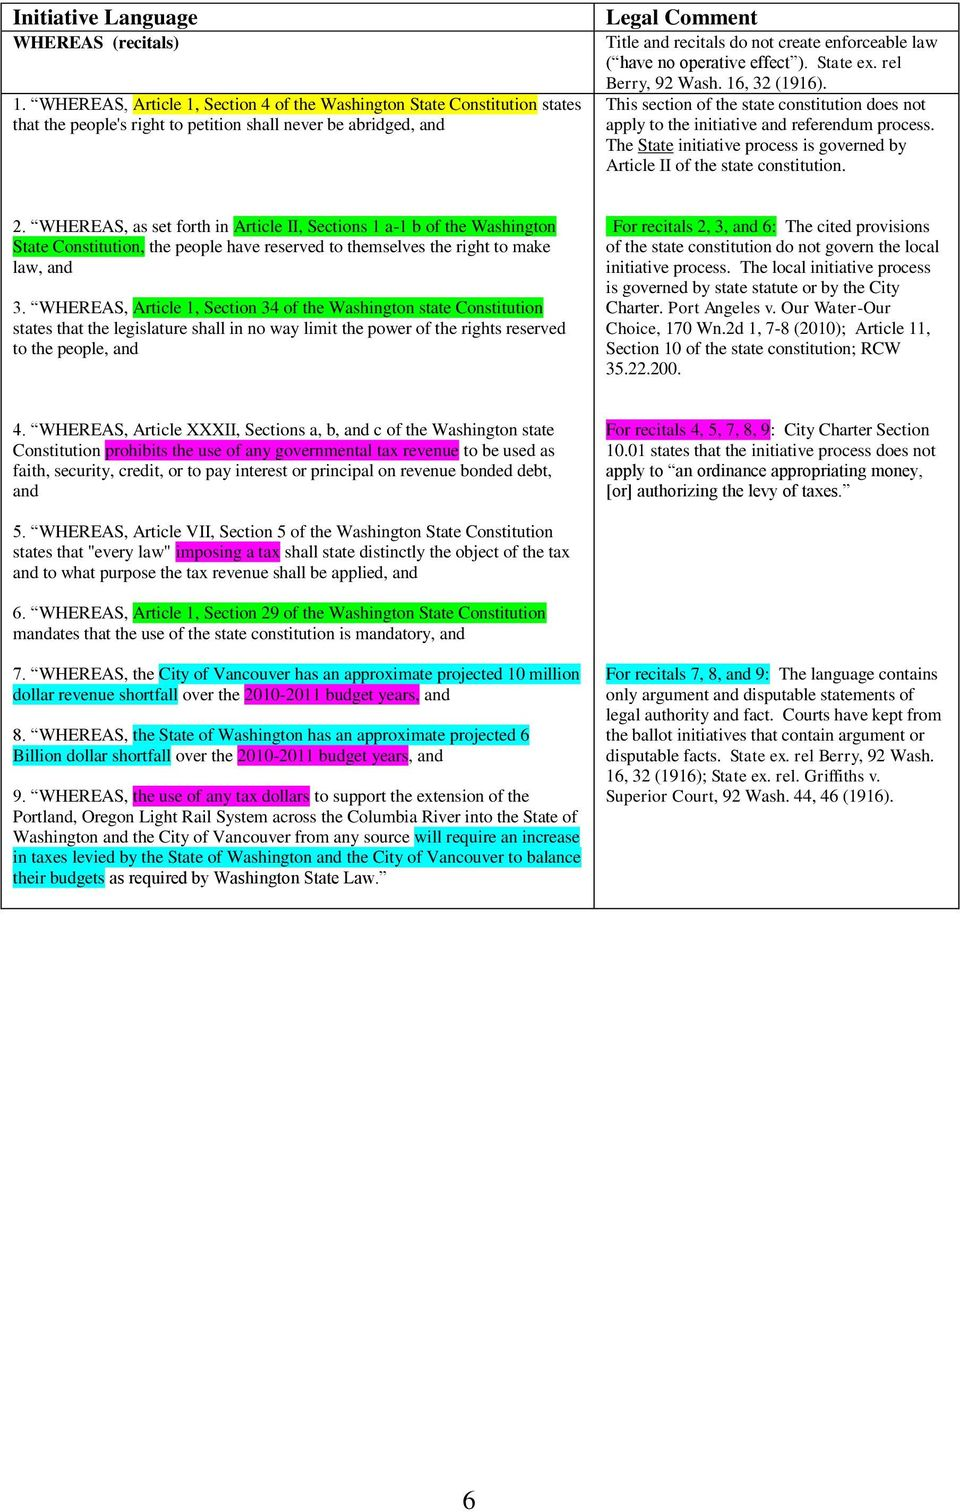 law ( have no operative effect ). State ex. rel Berry, 92 Wash. 16, 32 (1916). This section of the state constitution does not apply to the initiative and referendum process.